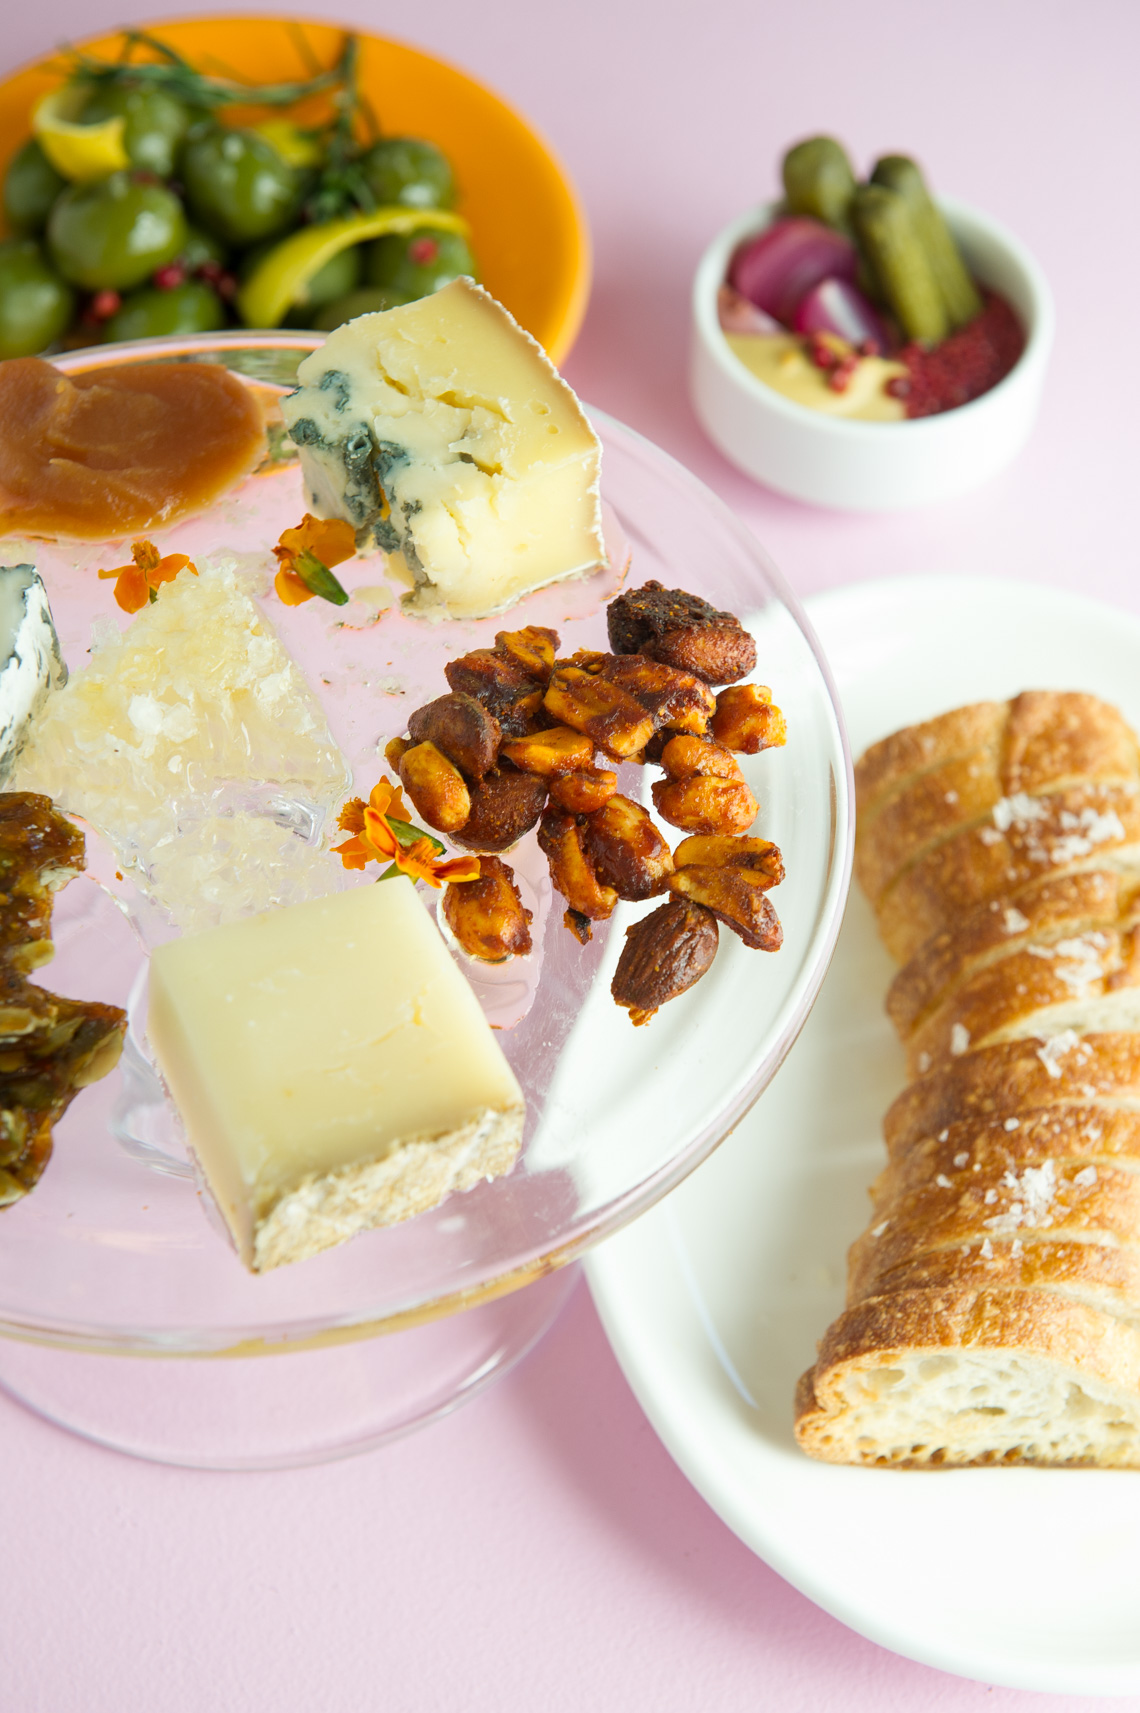 NYC Food Photographer - The Upsider Cheese Plate